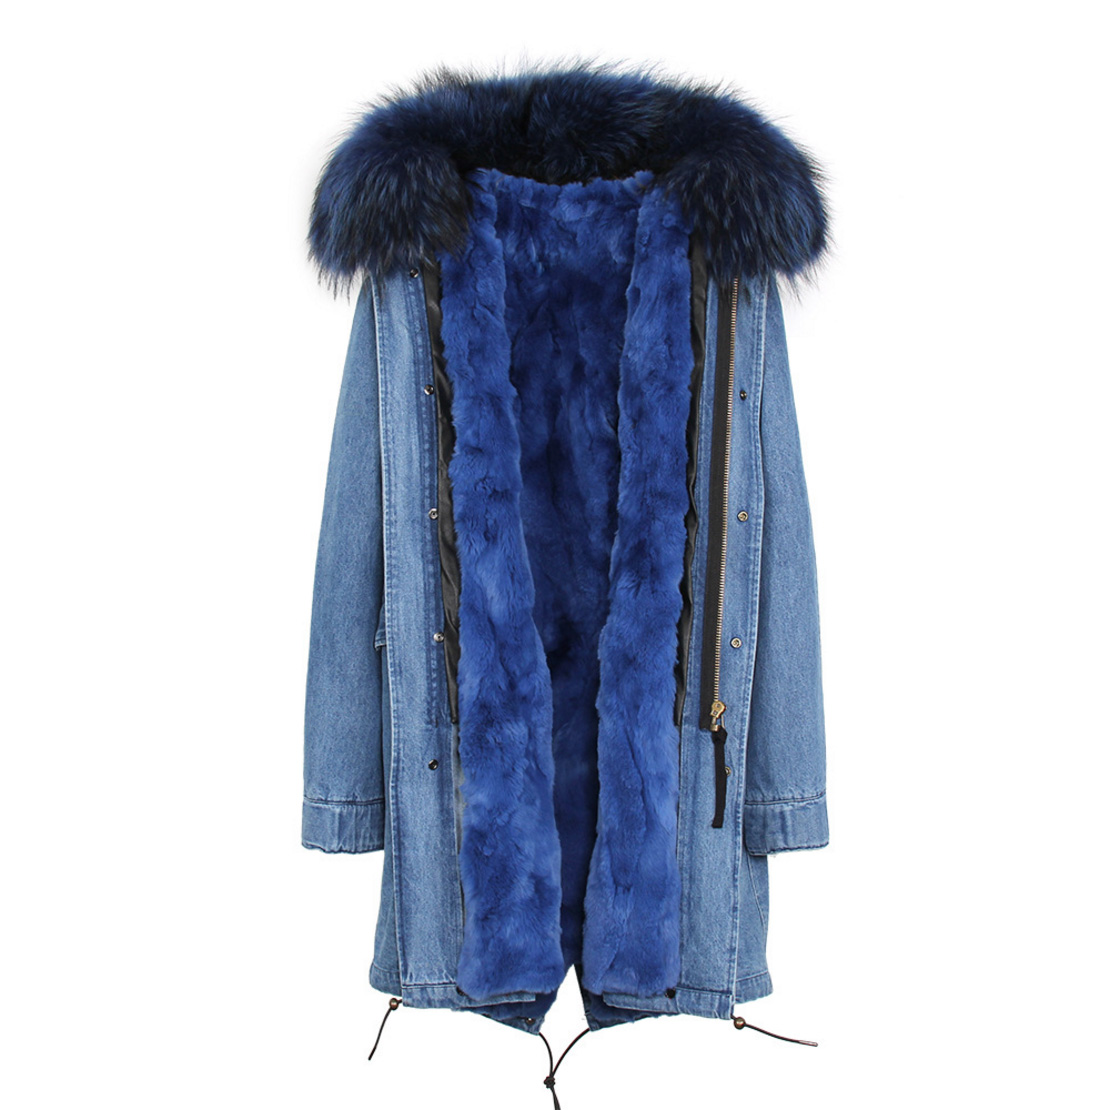 Raccoon Fur Trimmed Hooded Parka with Detachable Rex Rabbit Fur Liner 118 Details g1